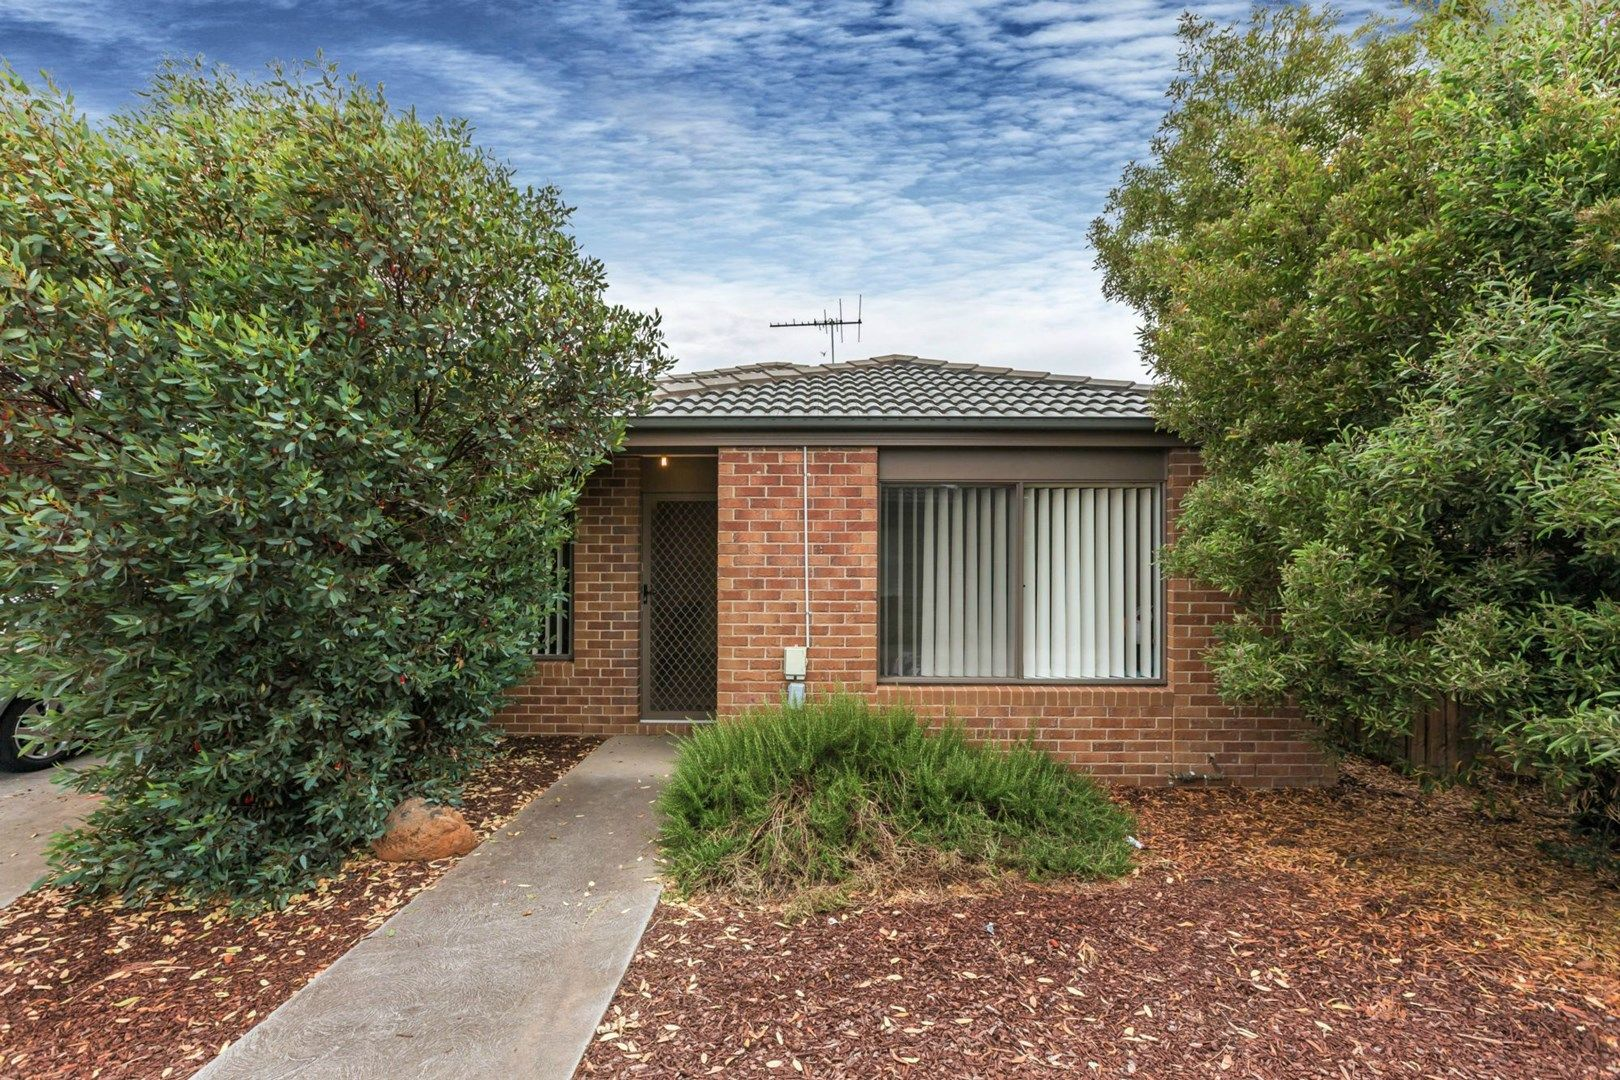 14/4 Austin Place, Melton South VIC 3338, Image 0